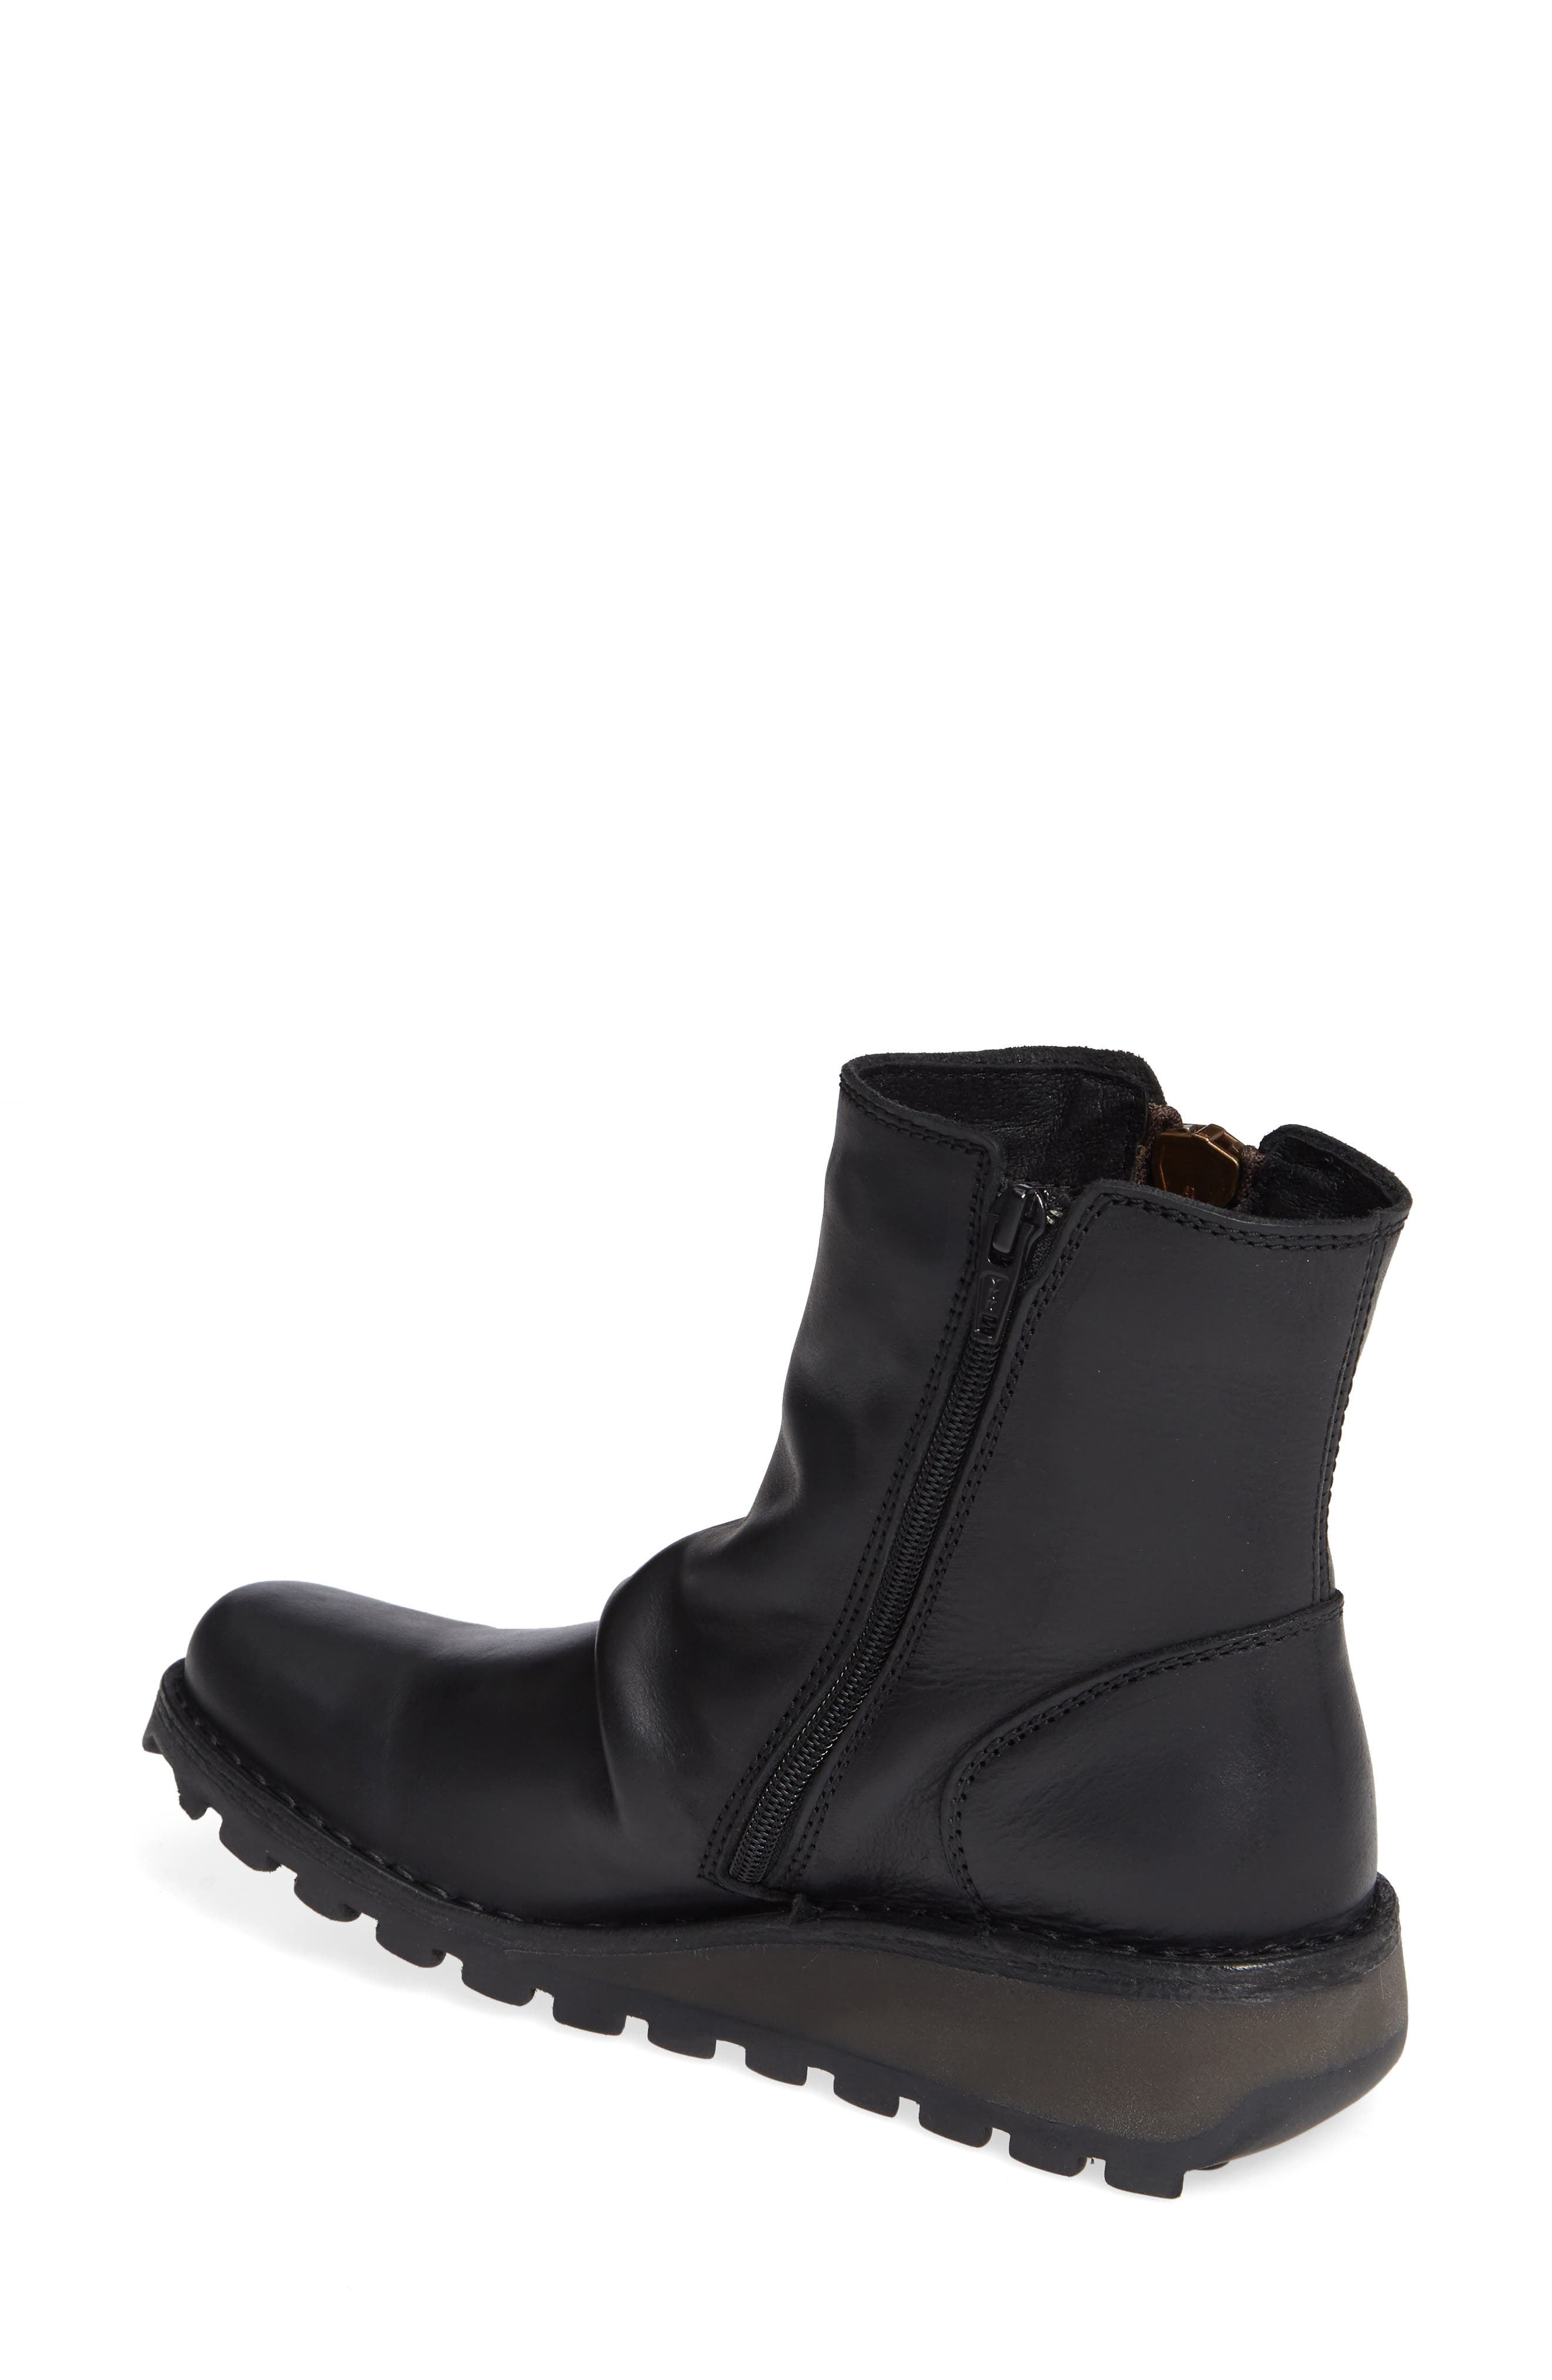 Mong Boot,                             Alternate thumbnail 2, color,                             Black Leather